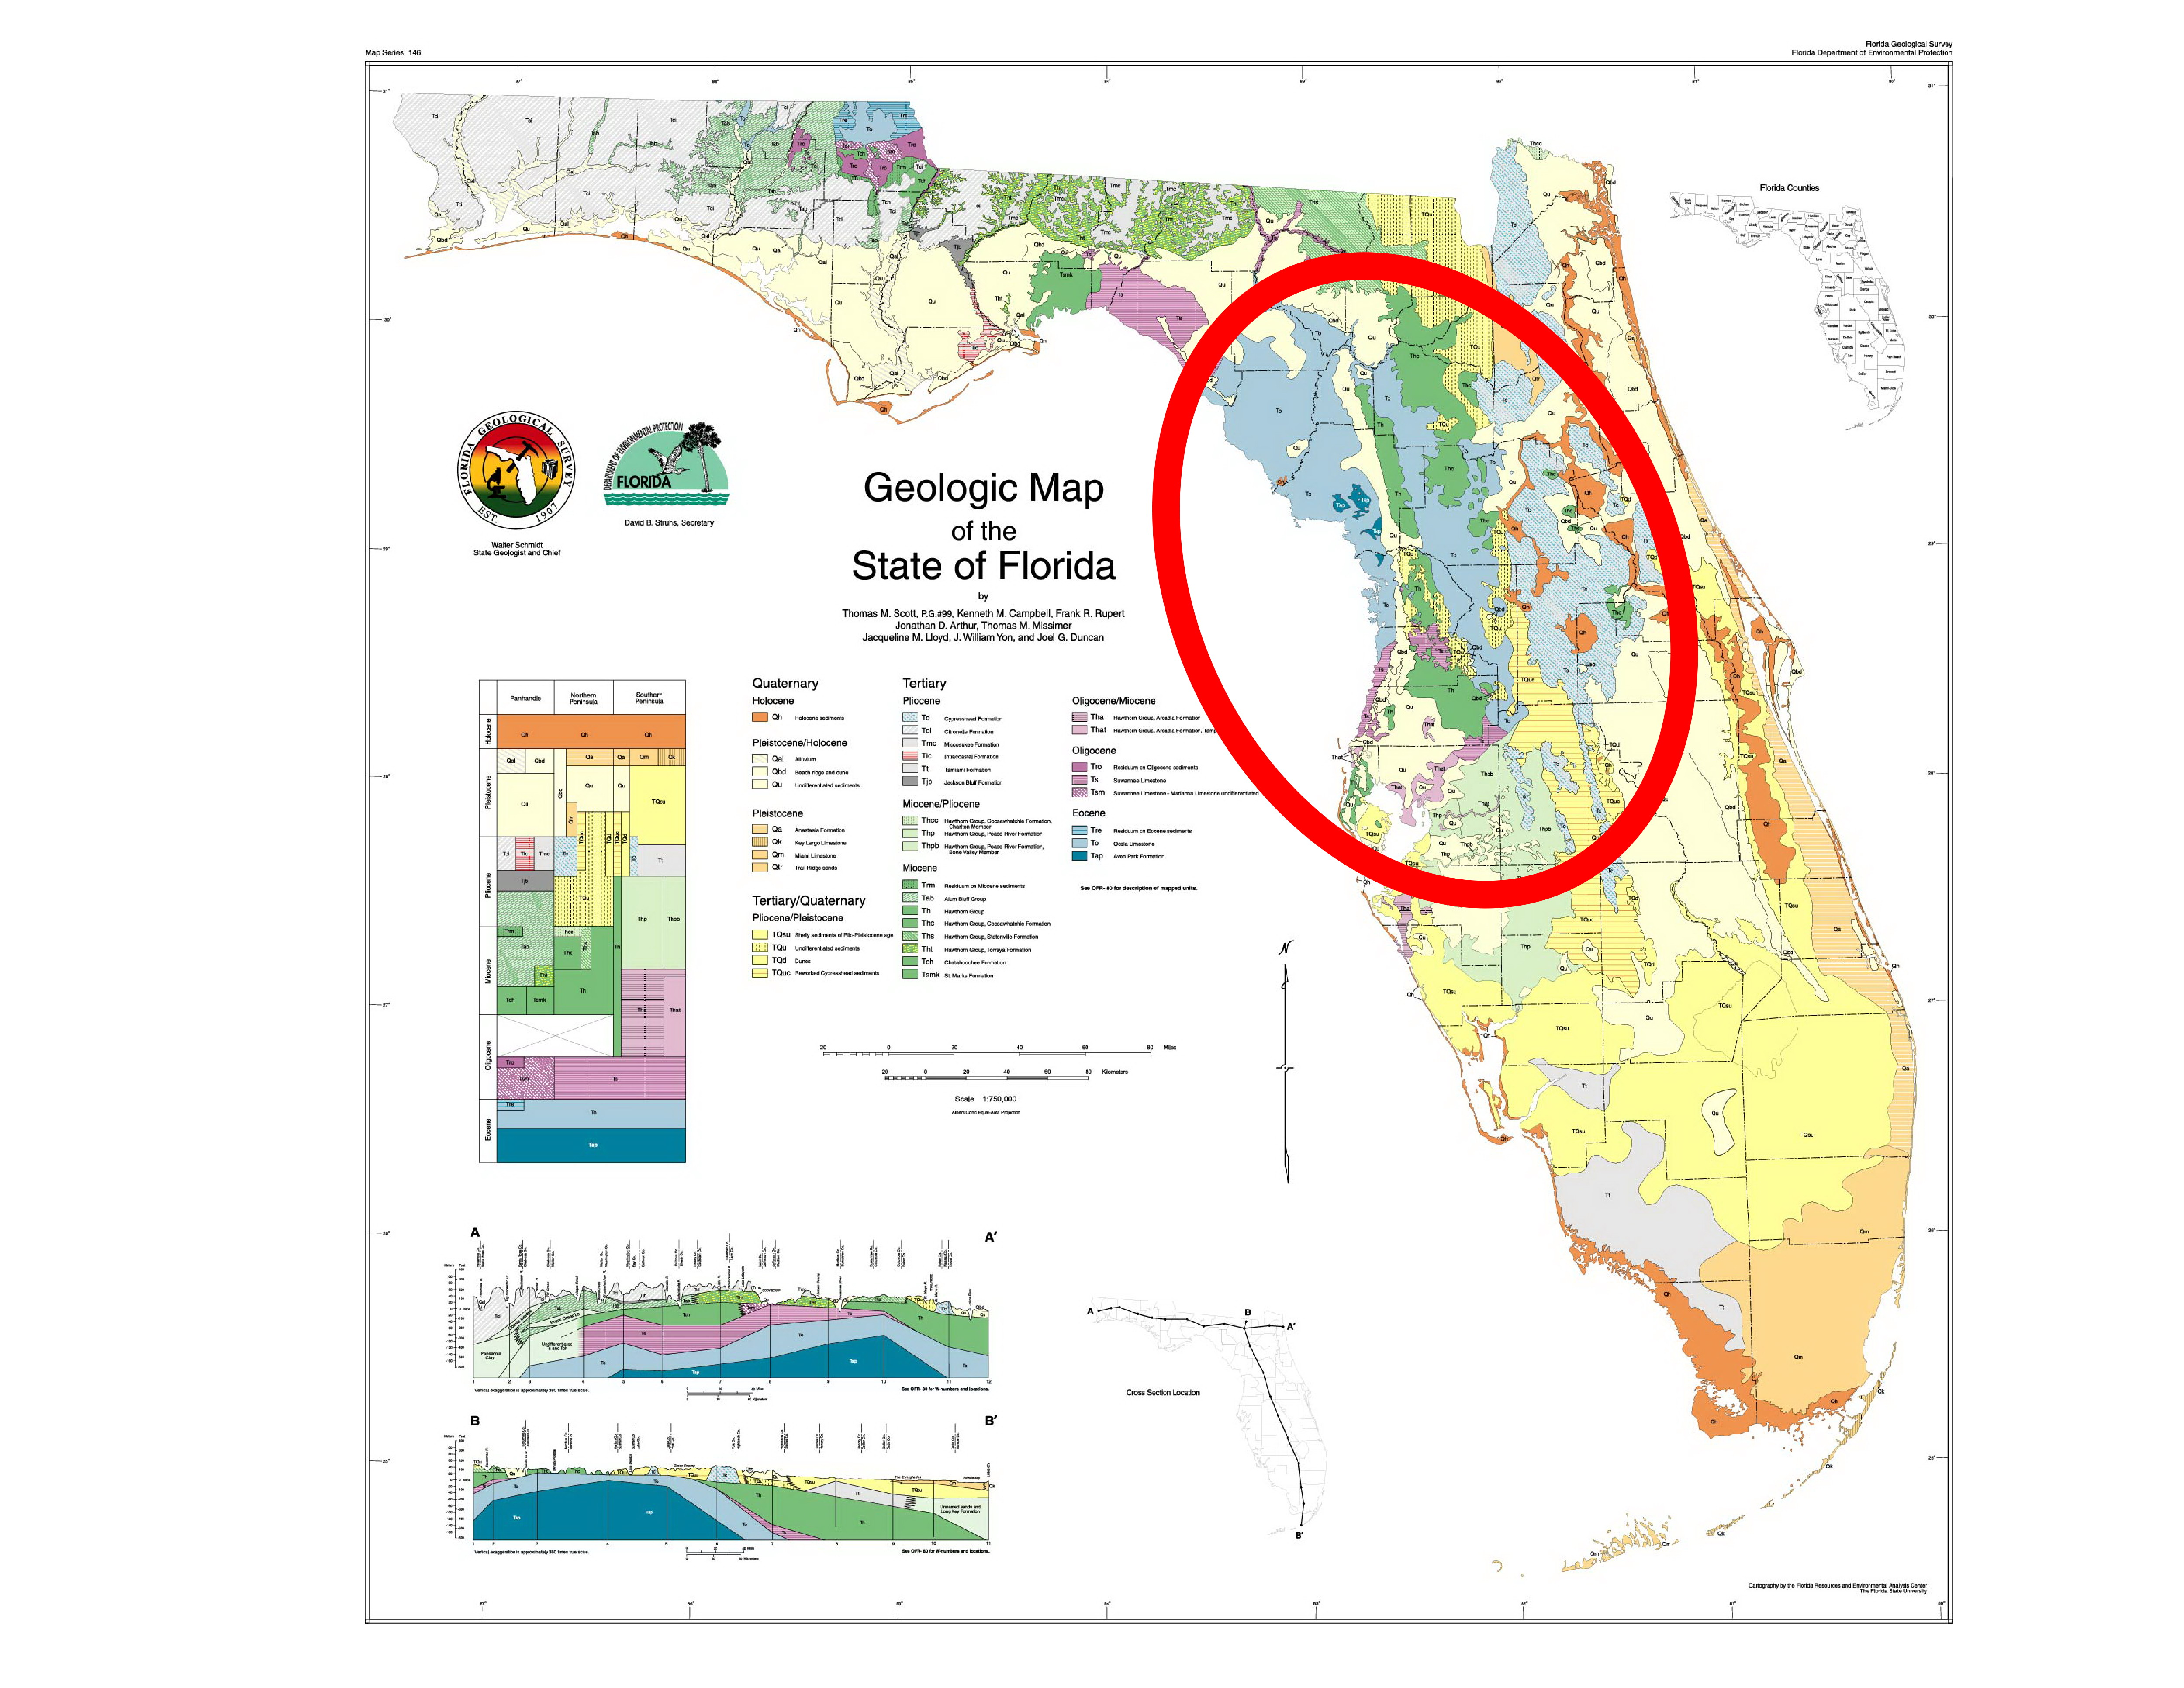 Tropical Weather Concerns in Florida- Intense Rain Events ... on swamp map, stream map, dune map, aquifer map, marsh map, prairie pothole map, reef map, data map, mudslide map, karst map, windstorm map, waterfall map, cliff map, cenote map, ship shoal map, wetland map, fault map, bridge map, florida sink hole map, fire map,